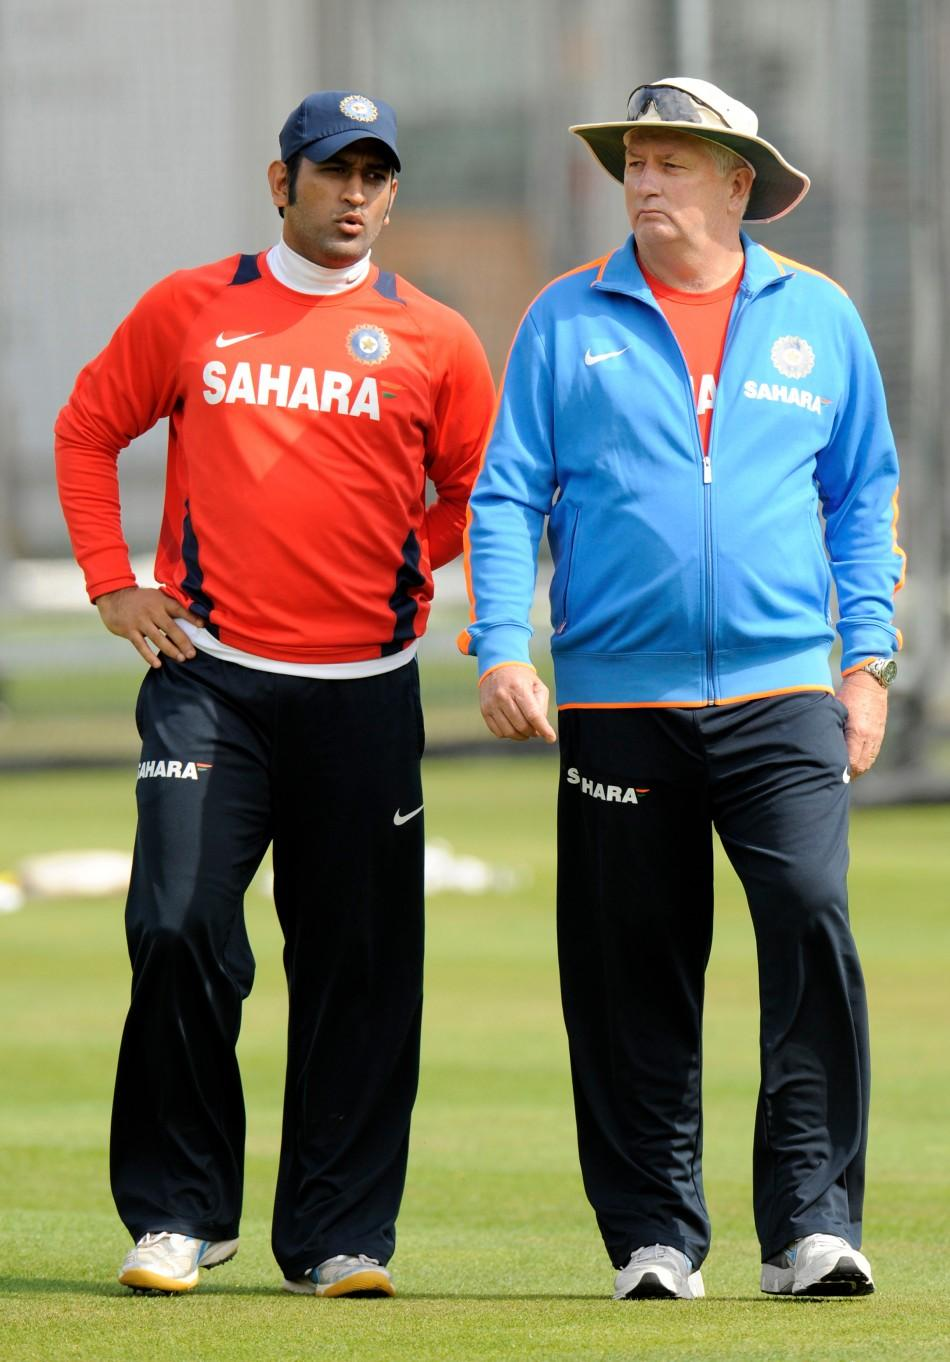 India's Dhoni talks to Fletcher during a training session before Thursday's first cricket test match against England at Lord's.